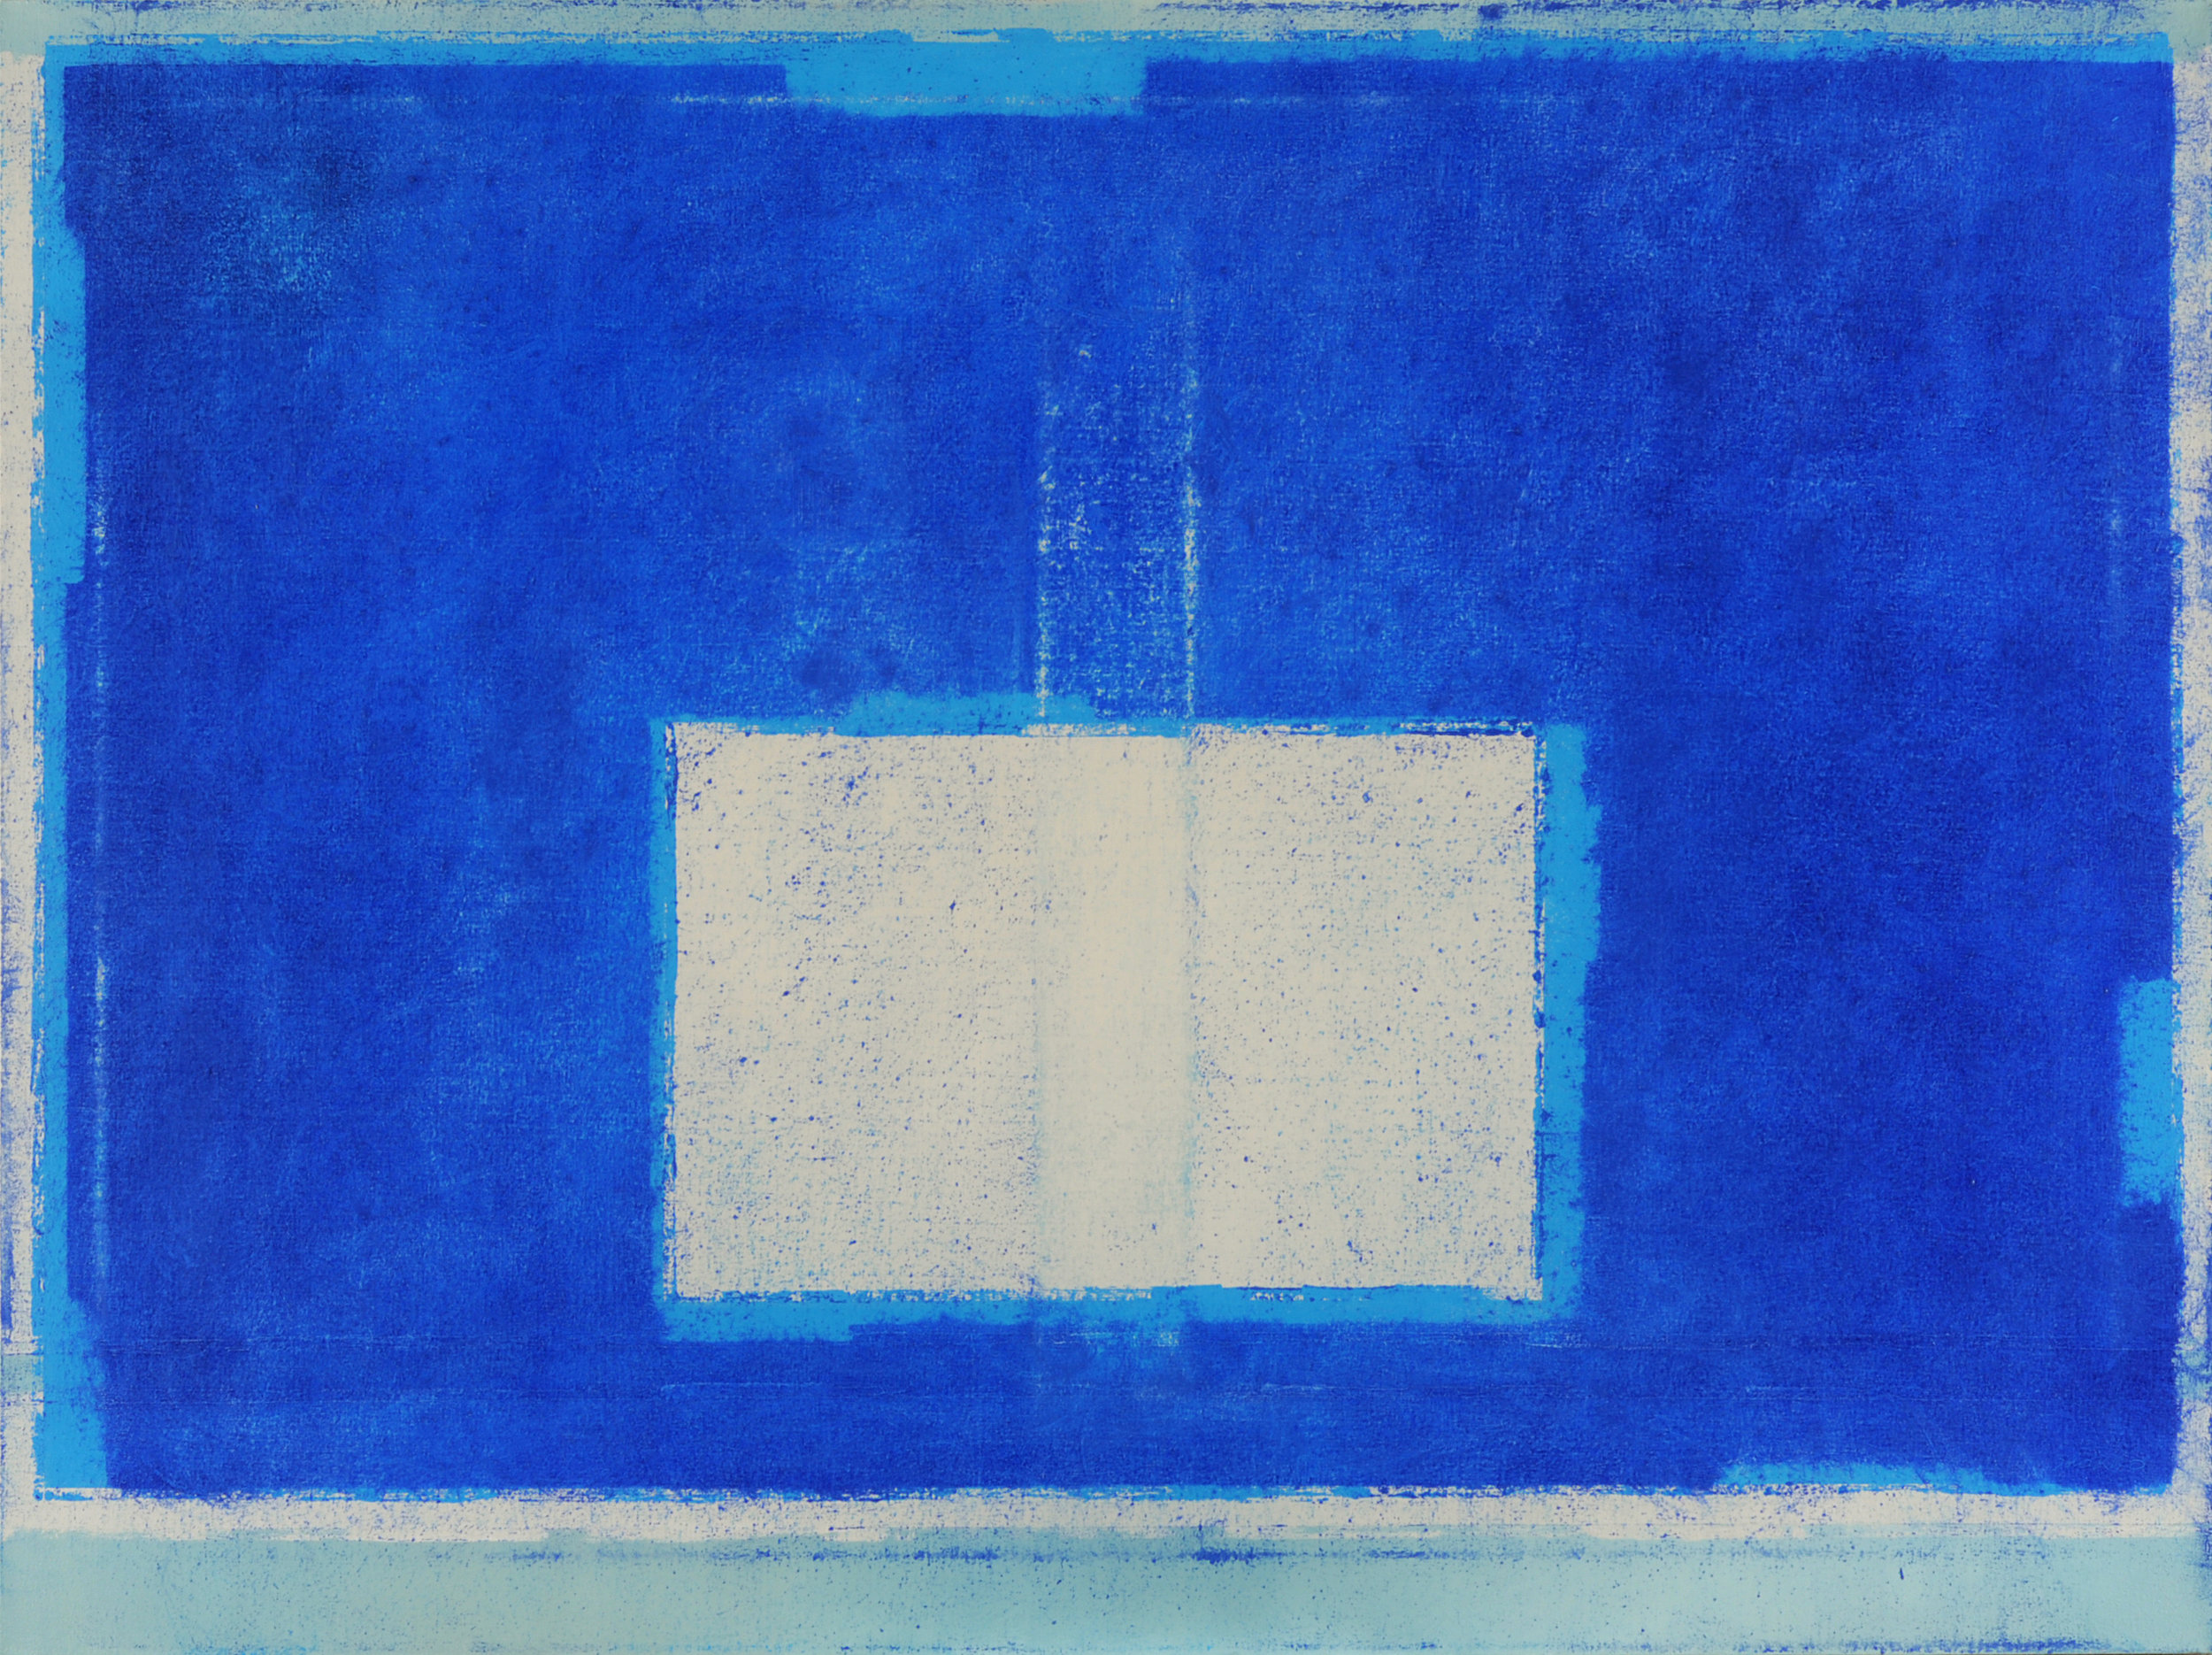 Blue Composition No. 910, 2019, 36 x 48, oil on cotton canvas, silver metal frame |  SOLD